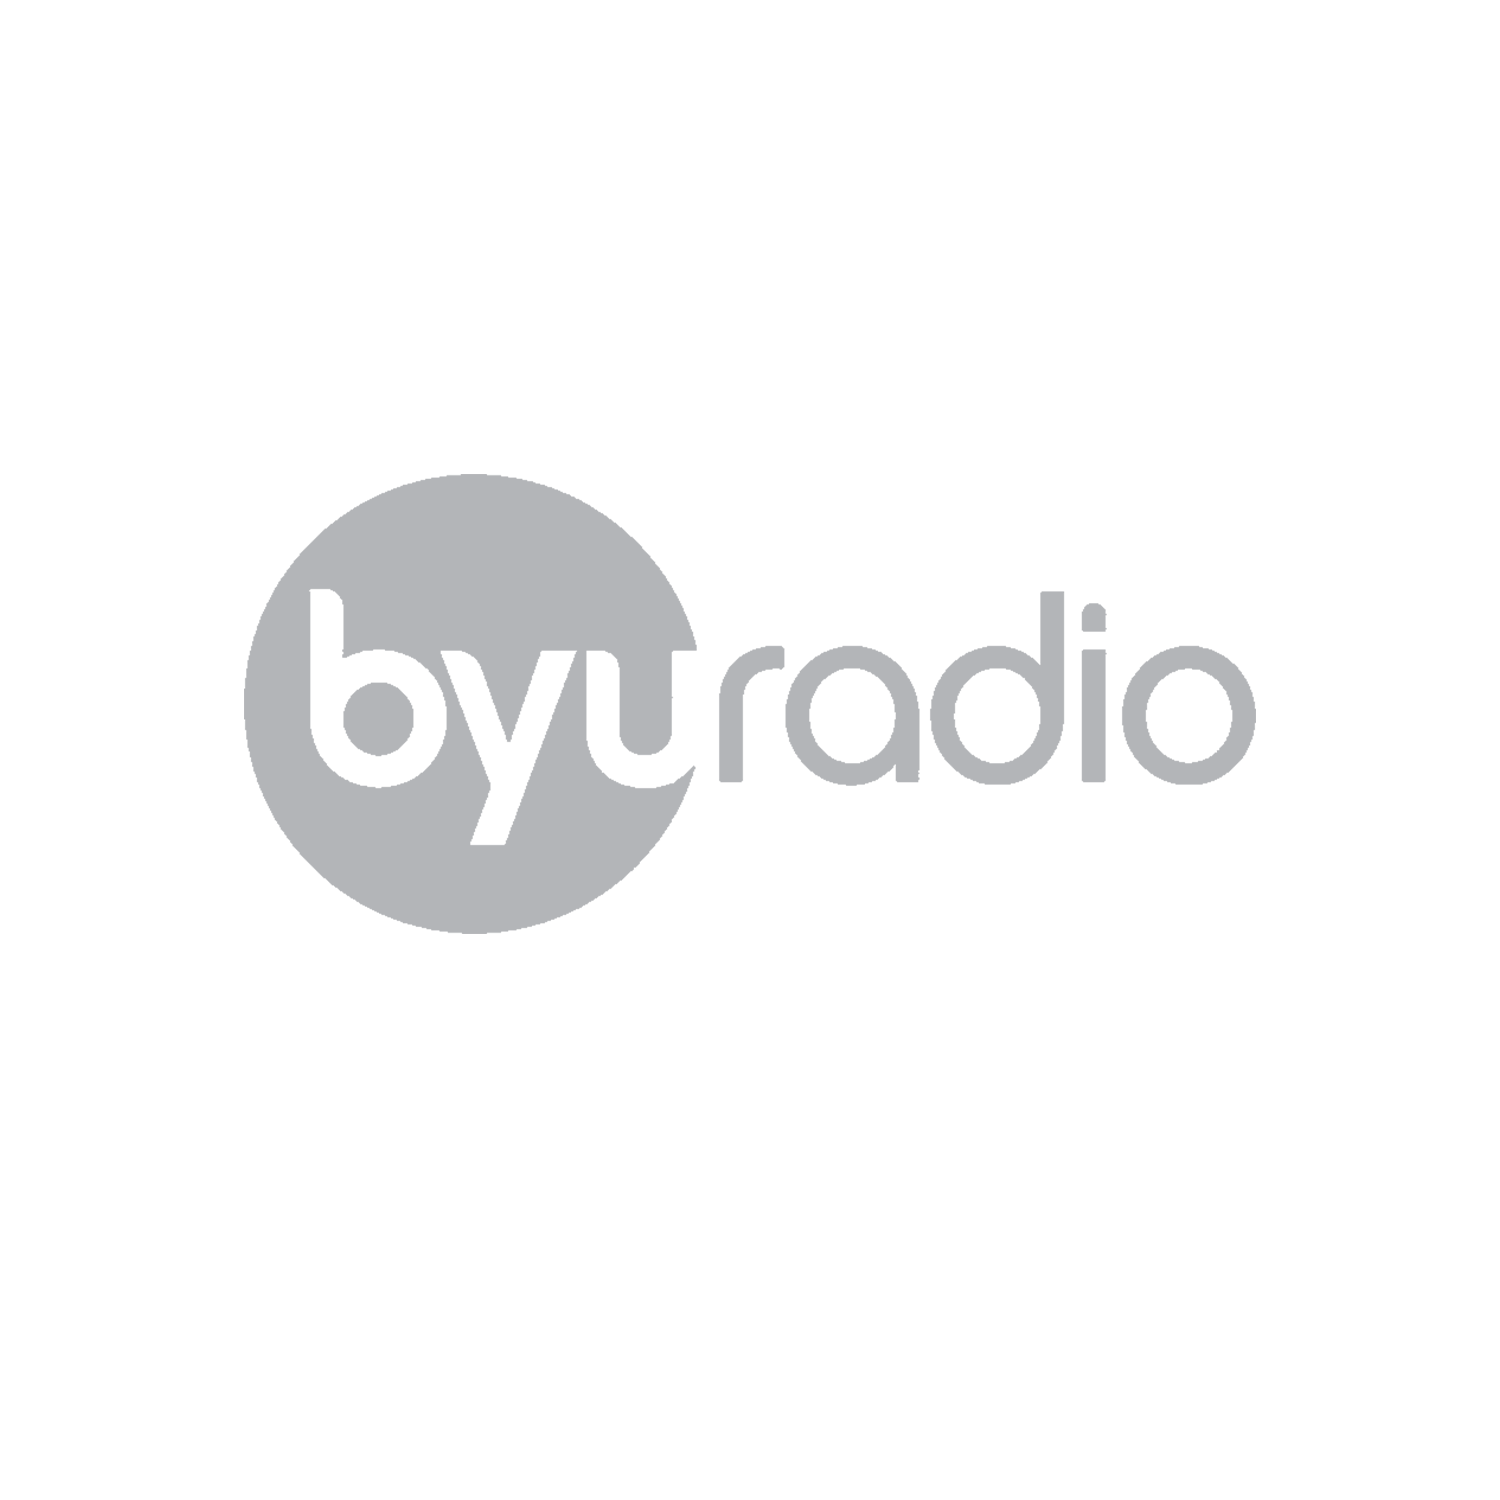 byuradio.png